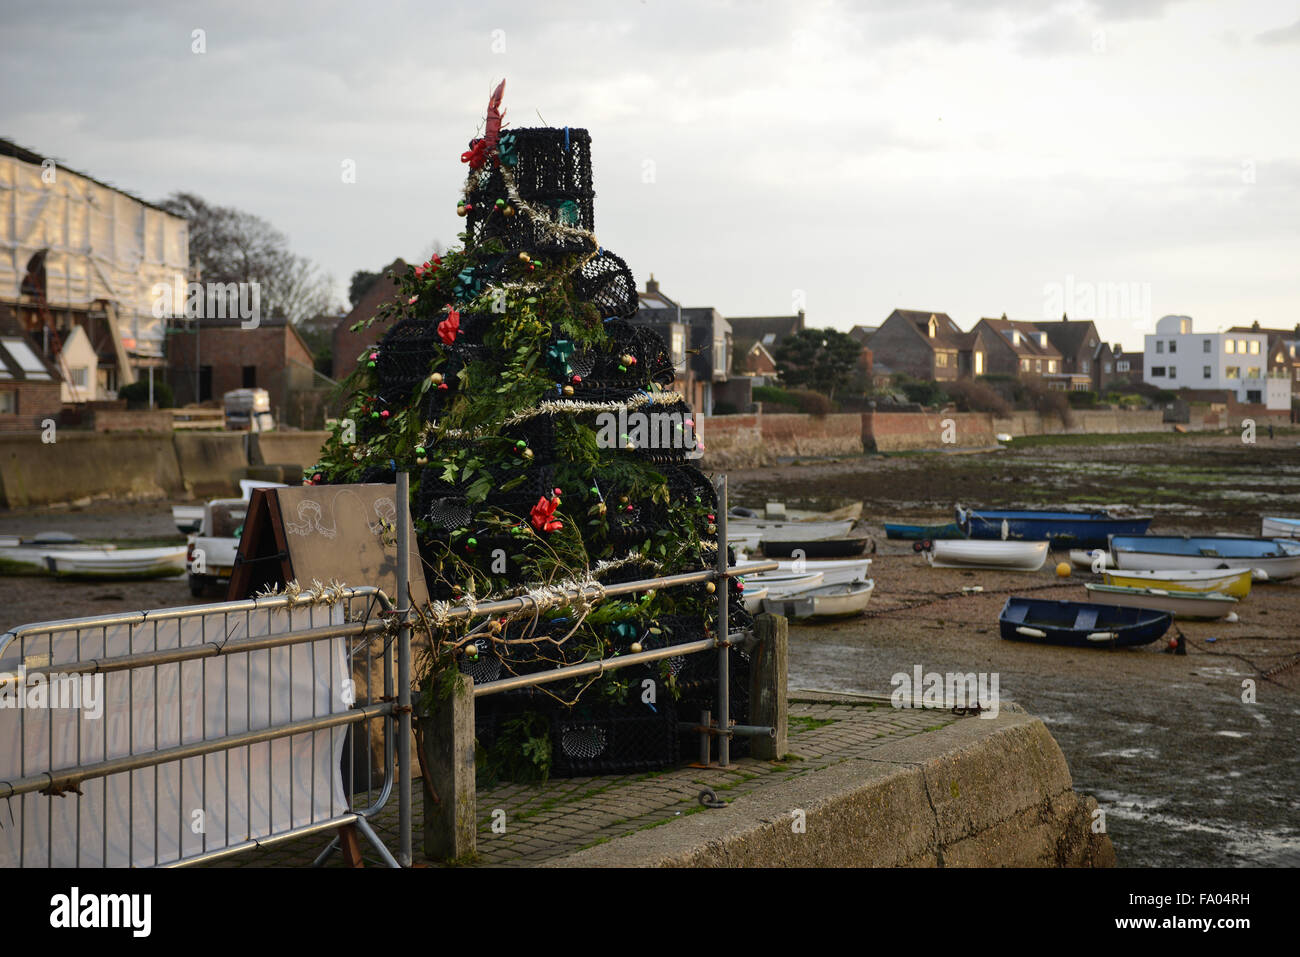 How Often To Water Christmas Tree.On The Quayside In Emsworth Hampshire England A Christmas